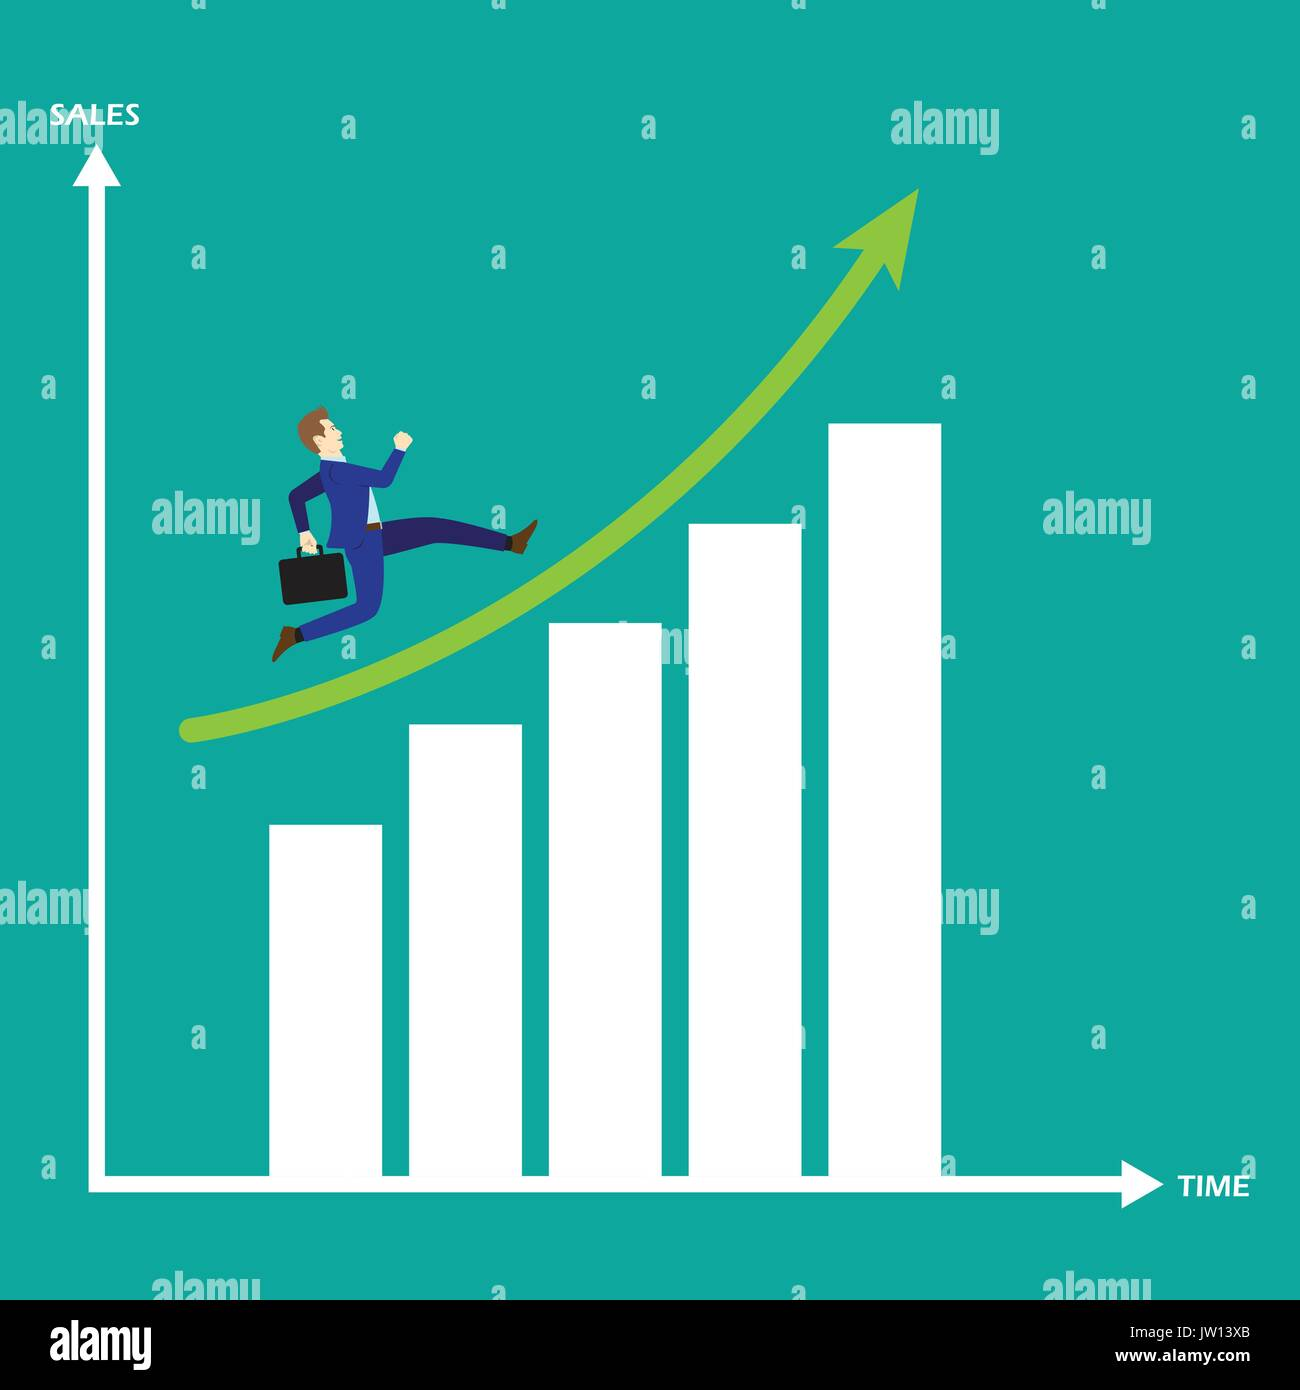 Business Concept As A Businessman Is Running On Growth Bar Graph. He Enjoys The New Opportunity Growth. Higher Sales Stock Vector